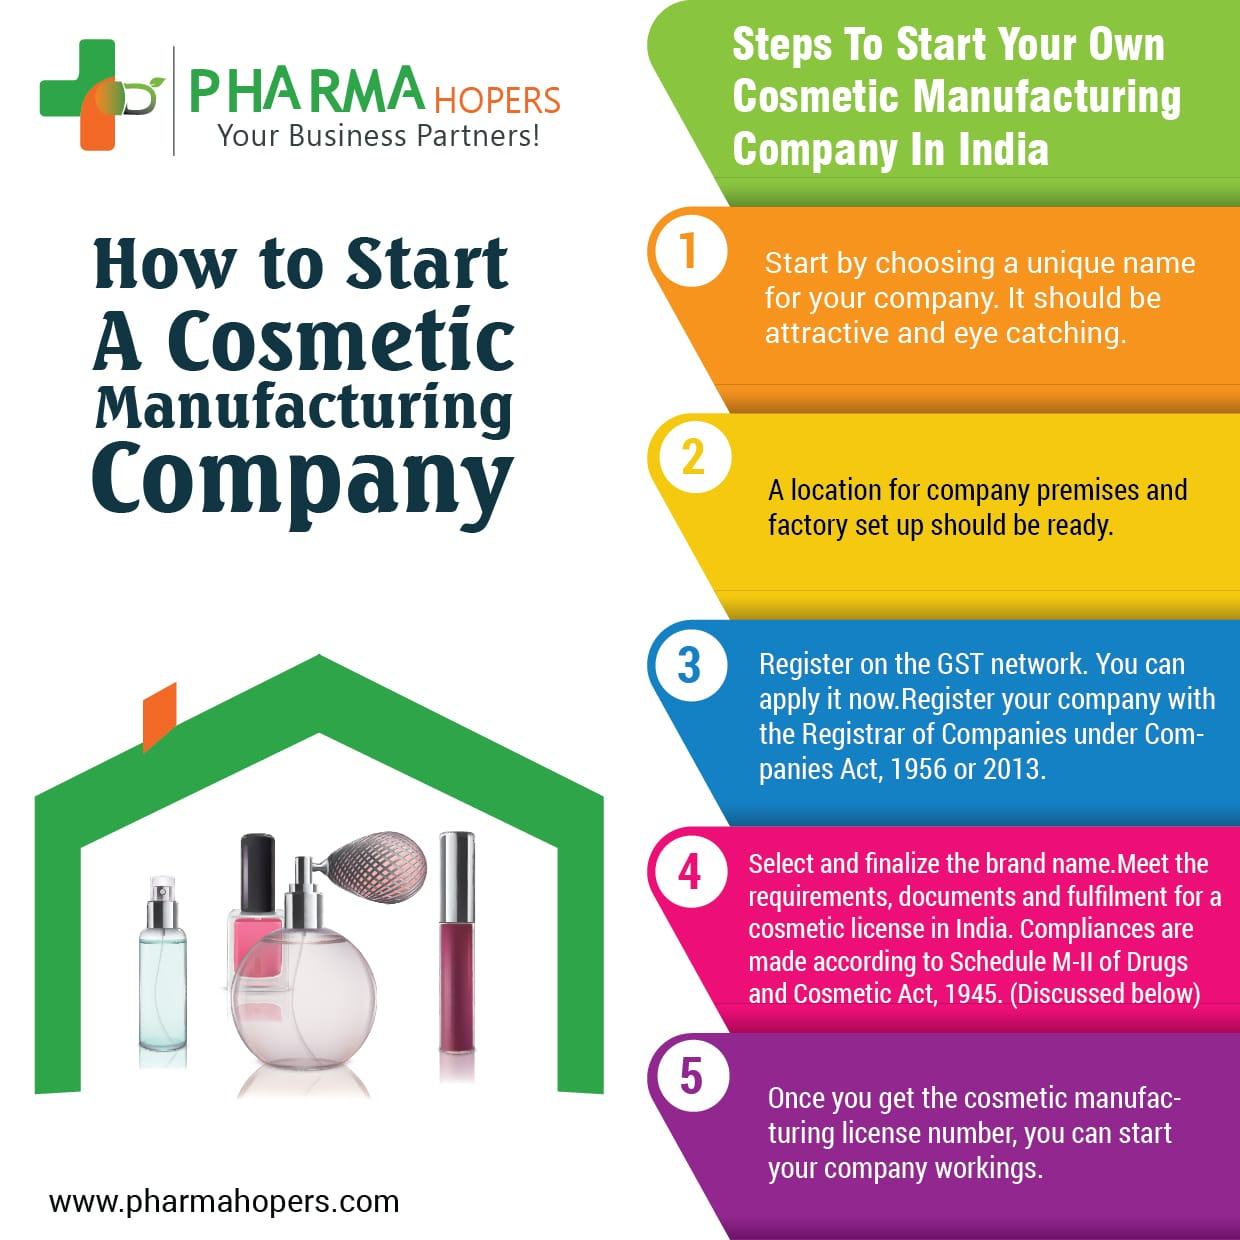 Tips to Start A Cosmetic Manufacturing Company